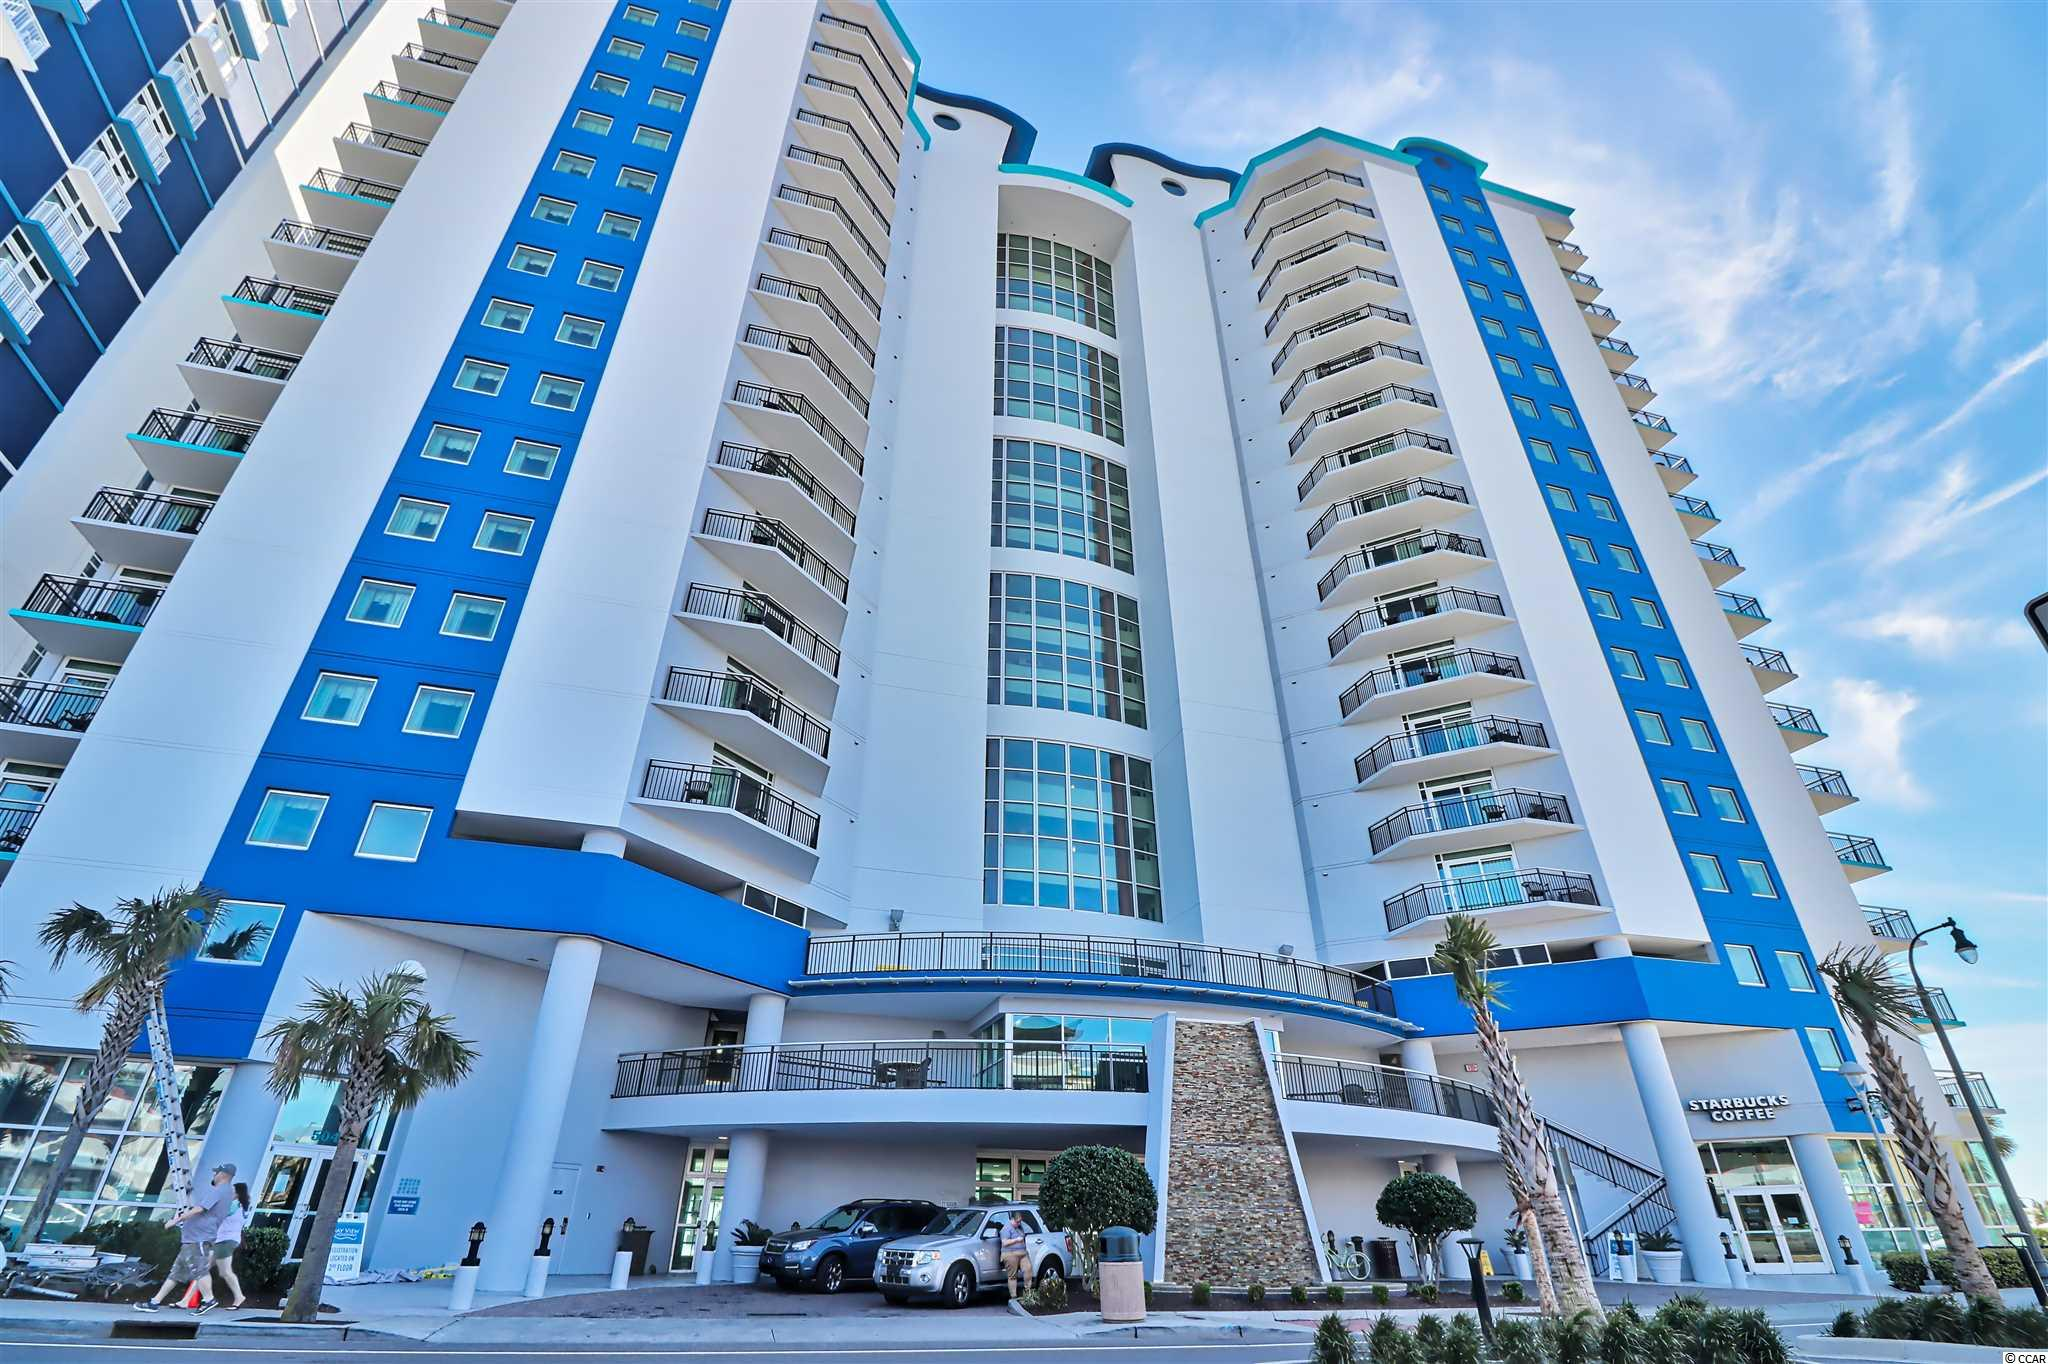 Beautiful 1 bed/1bath condo with ocean view balcony. Located at the heart of Myrtle Beach, a short walk to the boardwalk, and many major attractions such as Ripley's Believe It or Not! and Sky Wheel. Bay View Resort has indoor and outdoor pool, fully equipped gym, and a Starbuck on site.   Gross Rental income 2015: $36,161, 2016: $38,528, 2017: $40,028, 2018:$28,169, 2019: $29,888, 2020:$18,730, 2021 up to June: $16,000